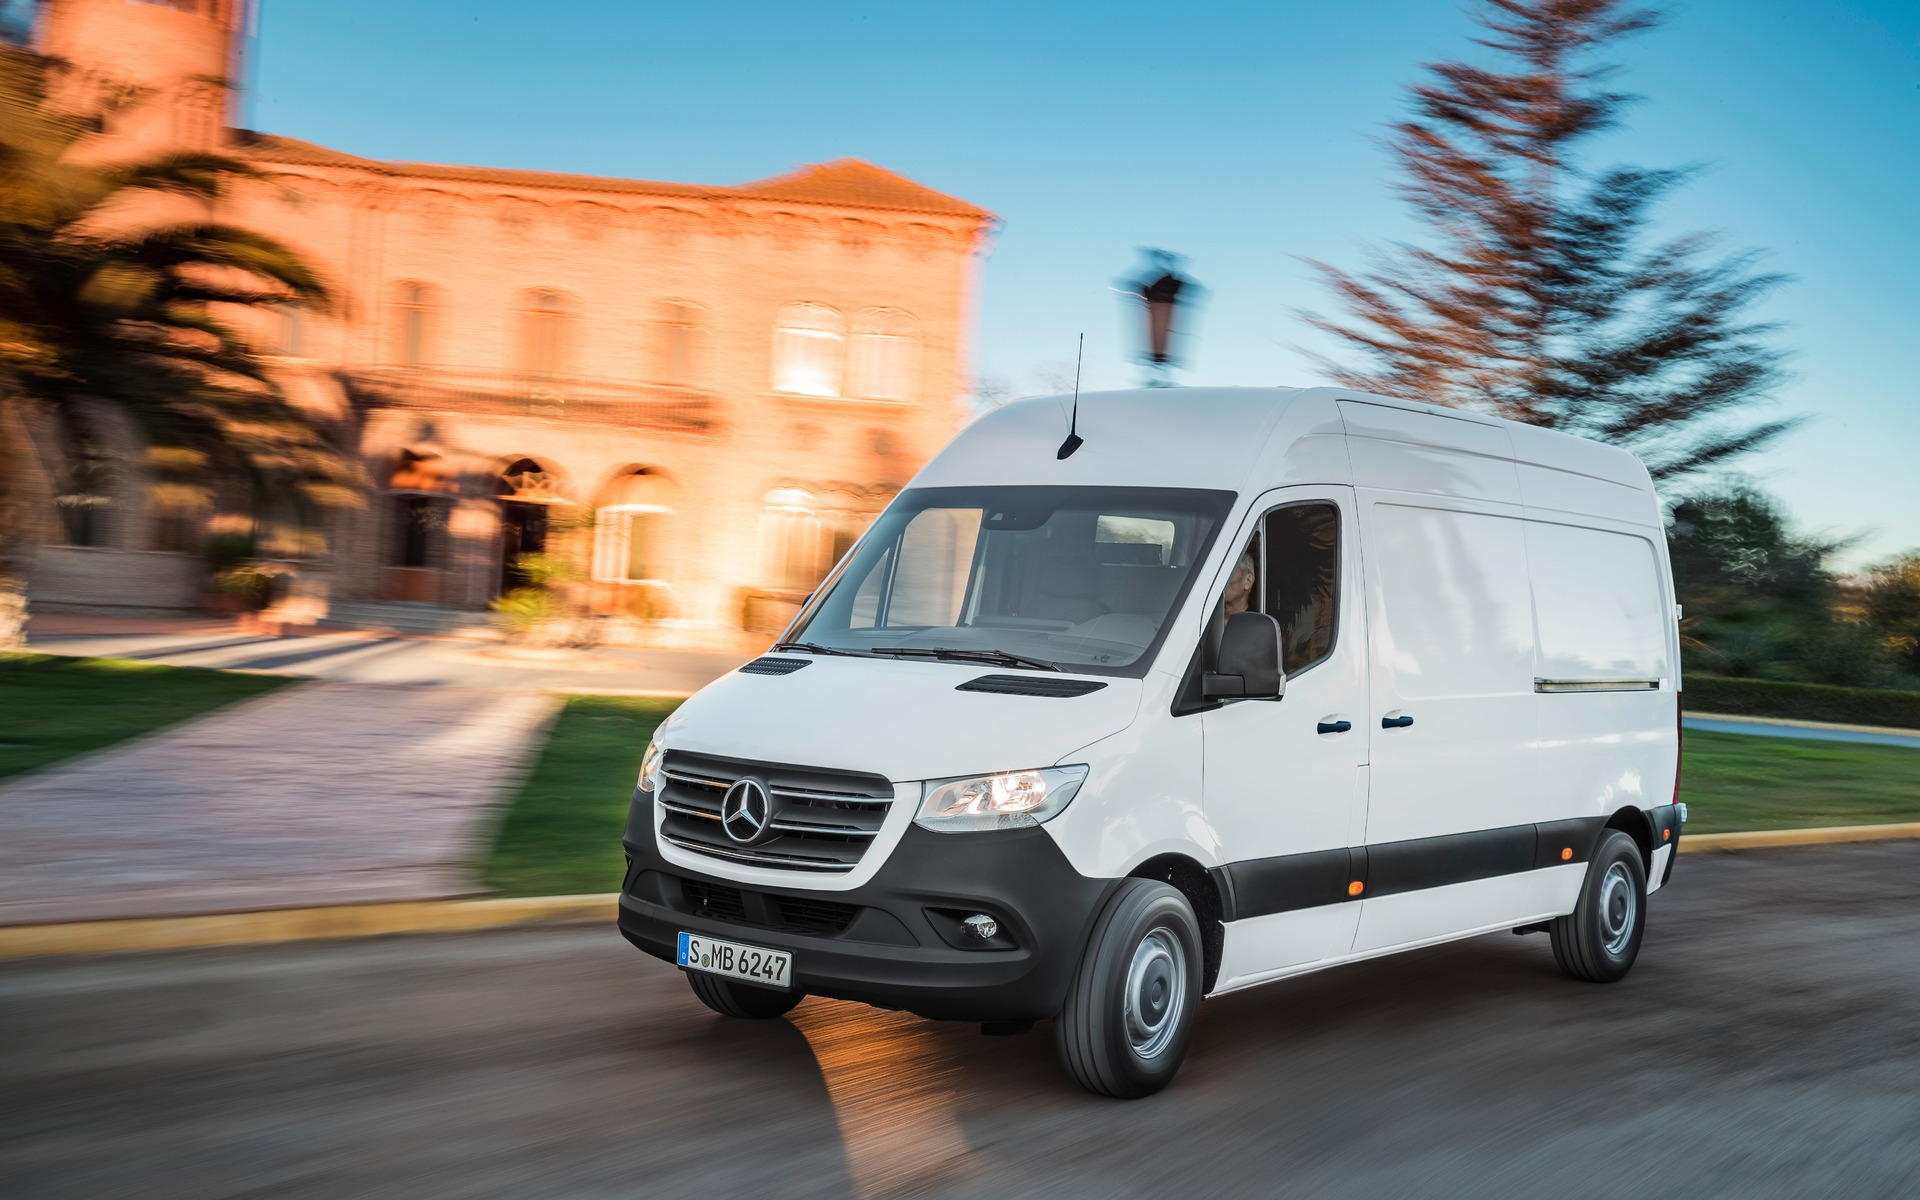 19e0481ee5 2019 Mercedes-Benz Sprinter Unveiled - The Car Guide